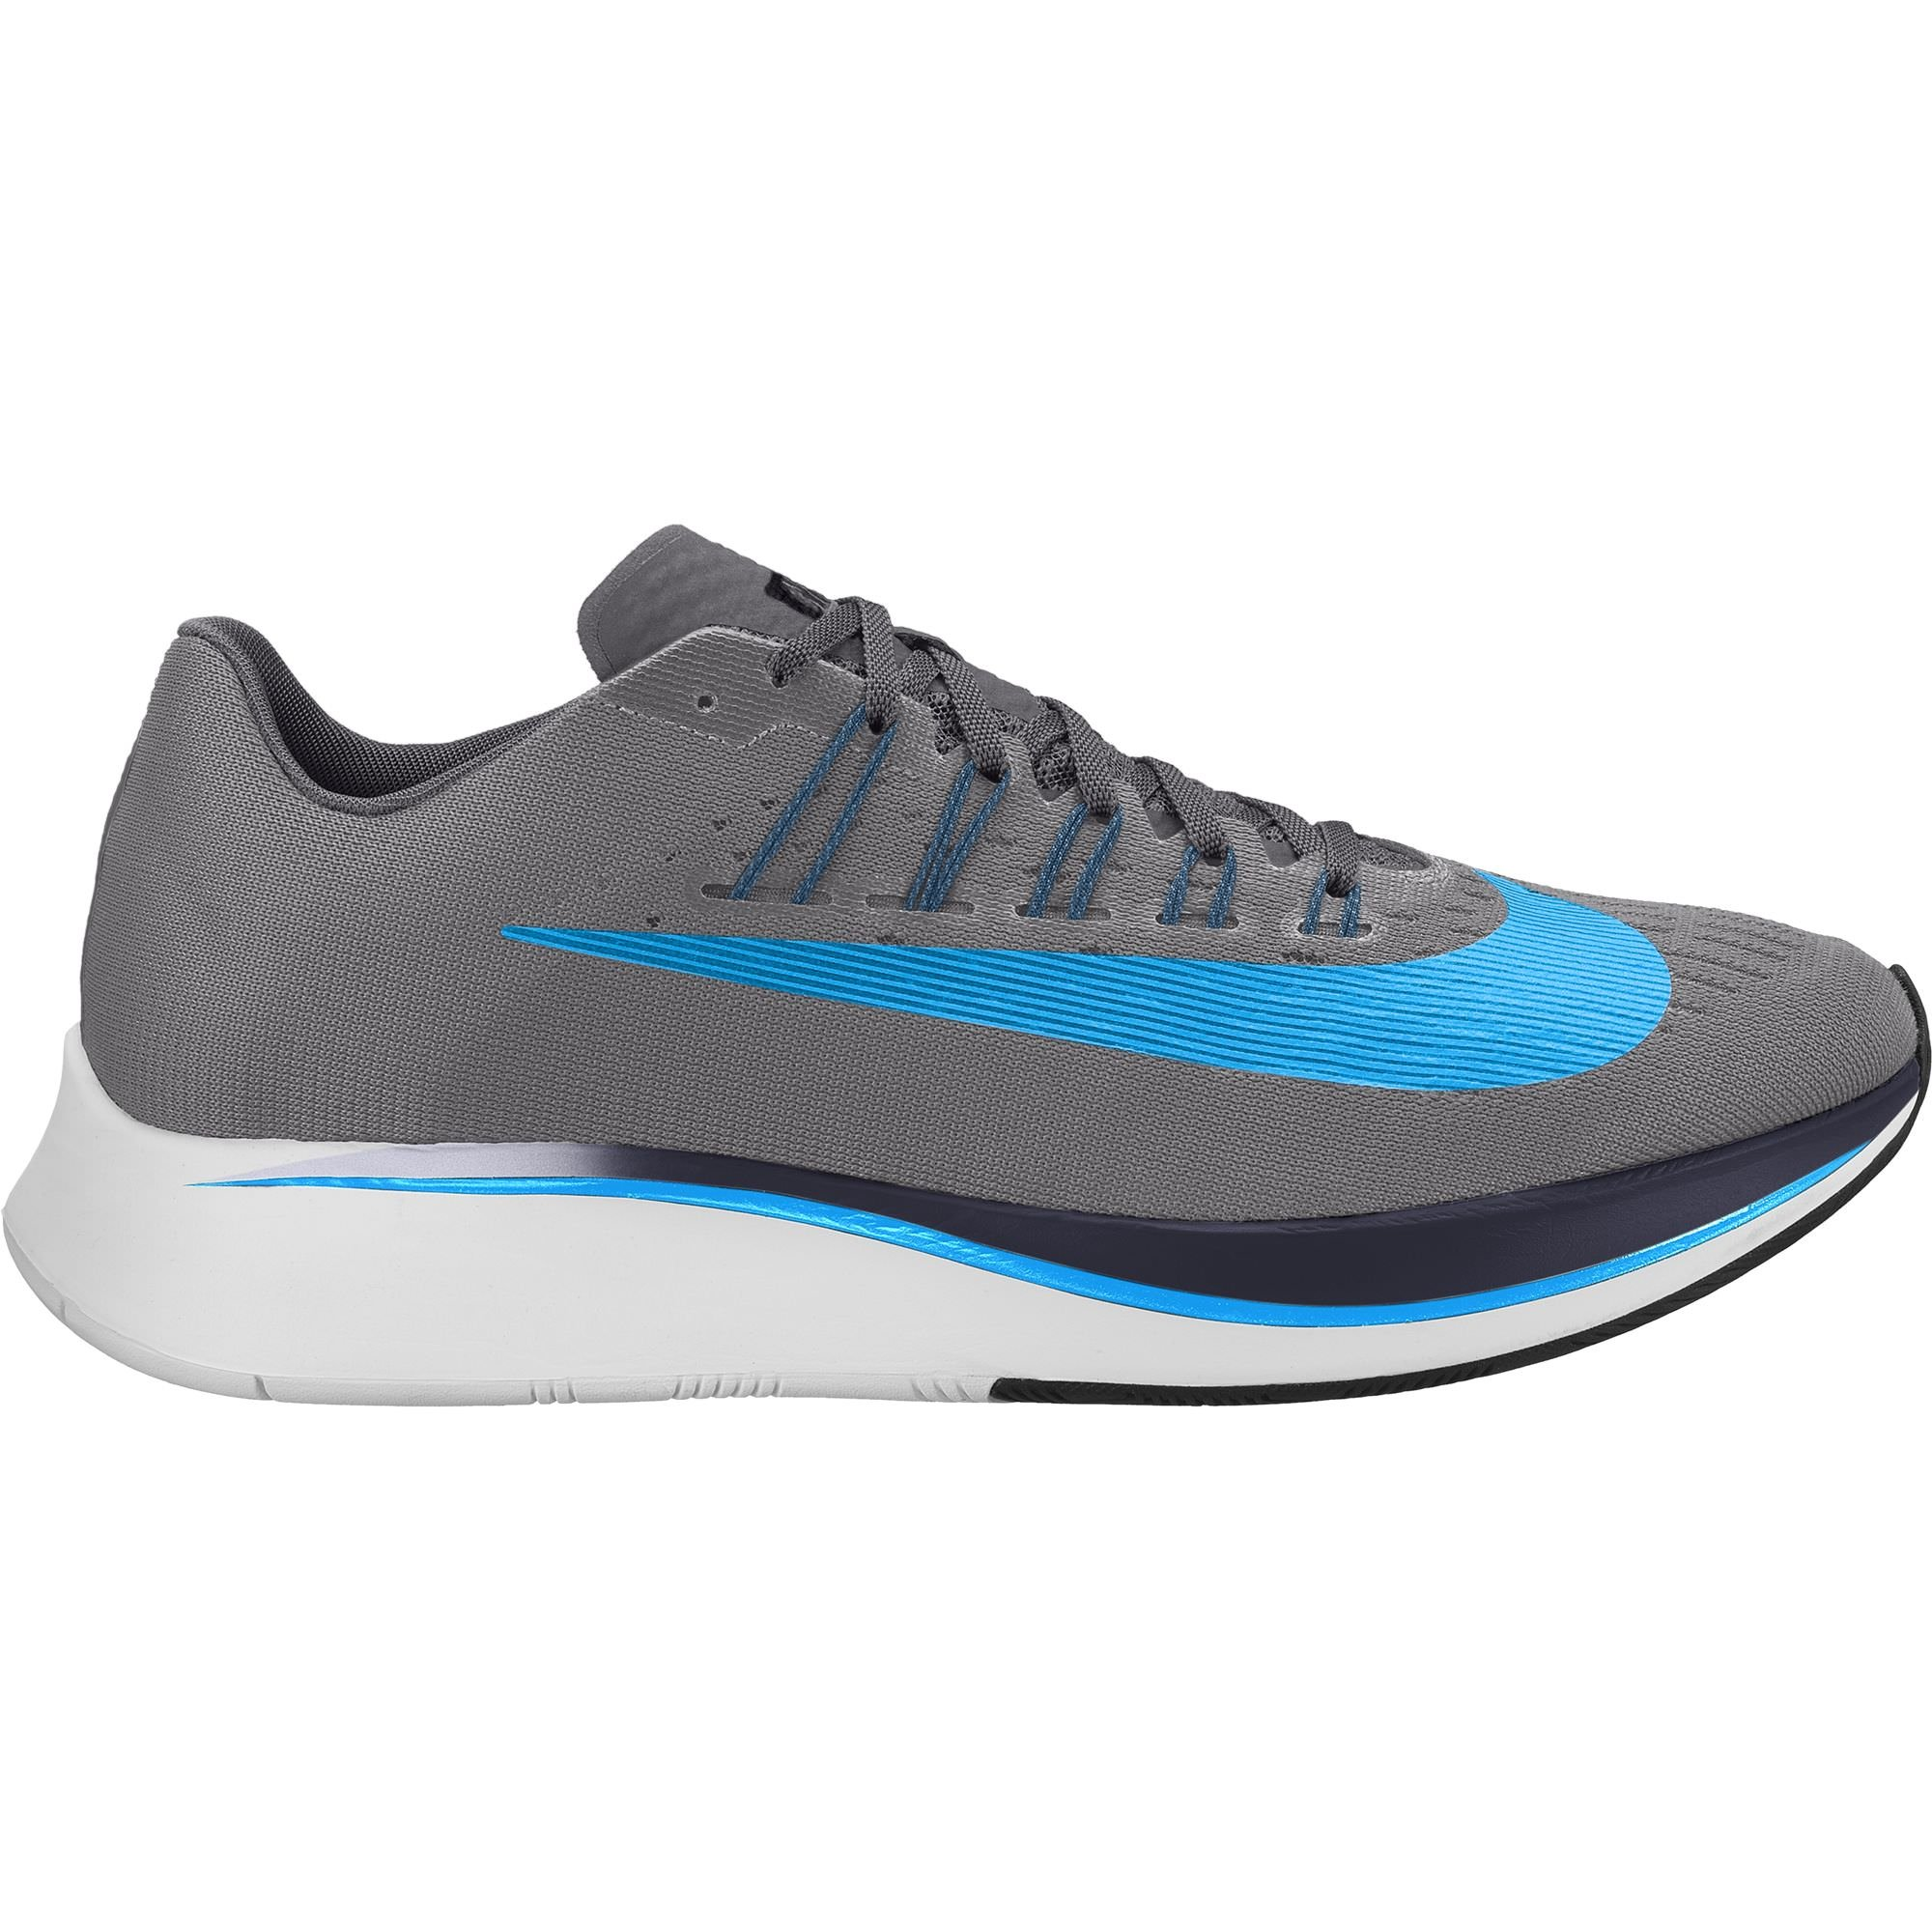 82d953323436 Galleon - Nike Men sZoom Fly Running Shoe Gunsmoke Blue  Hero-Obsidian-Thunder Grey 8.0